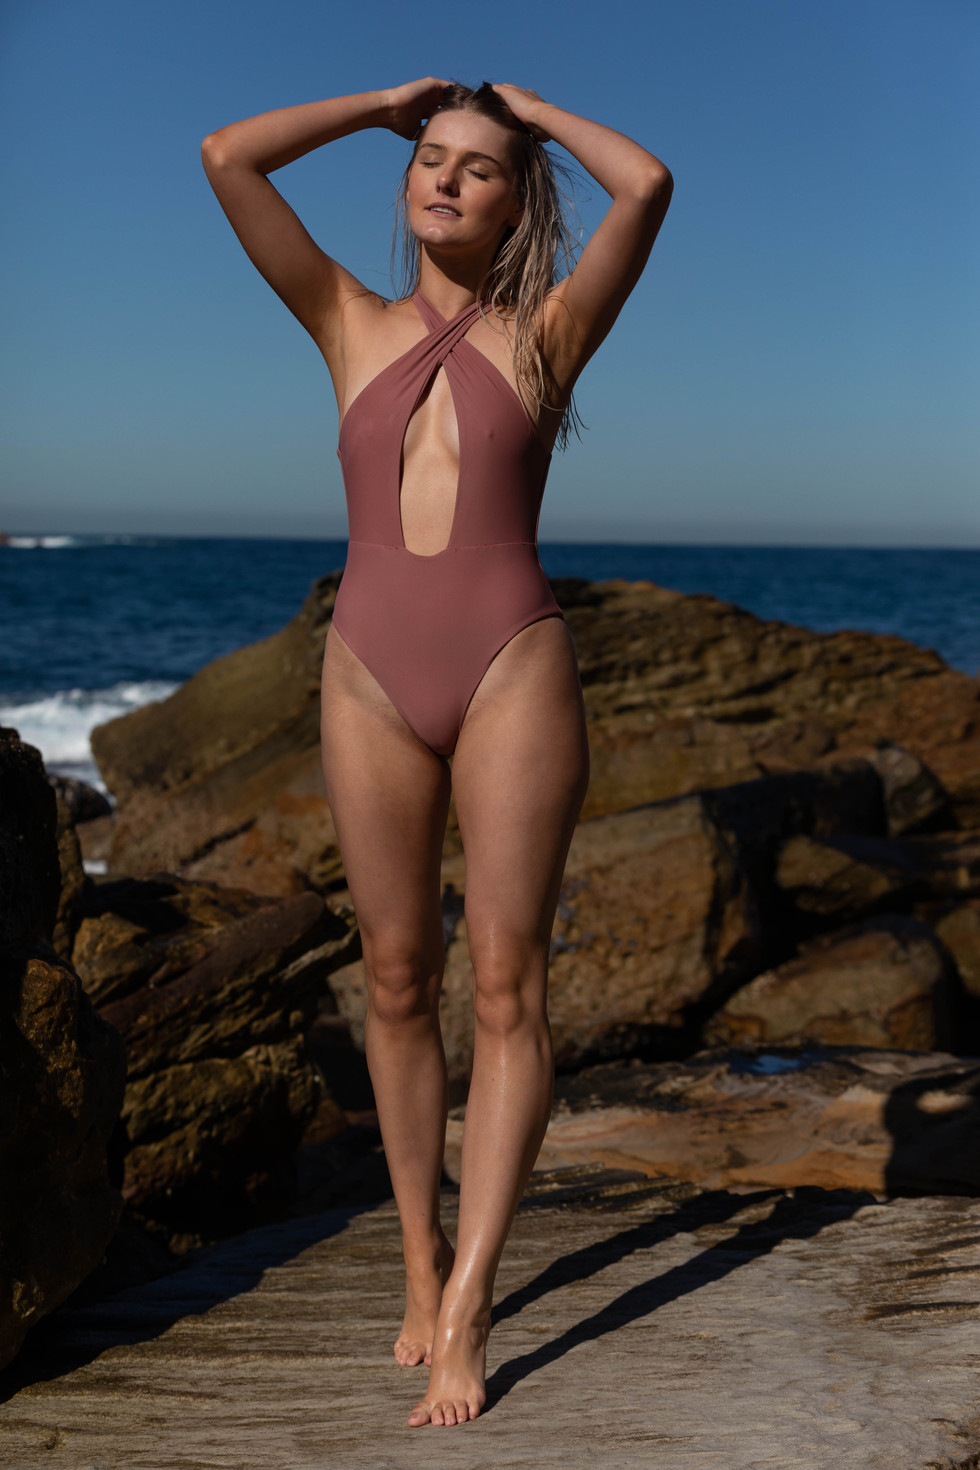 Caitlin_by_CoogeePhotography-3118.jpg